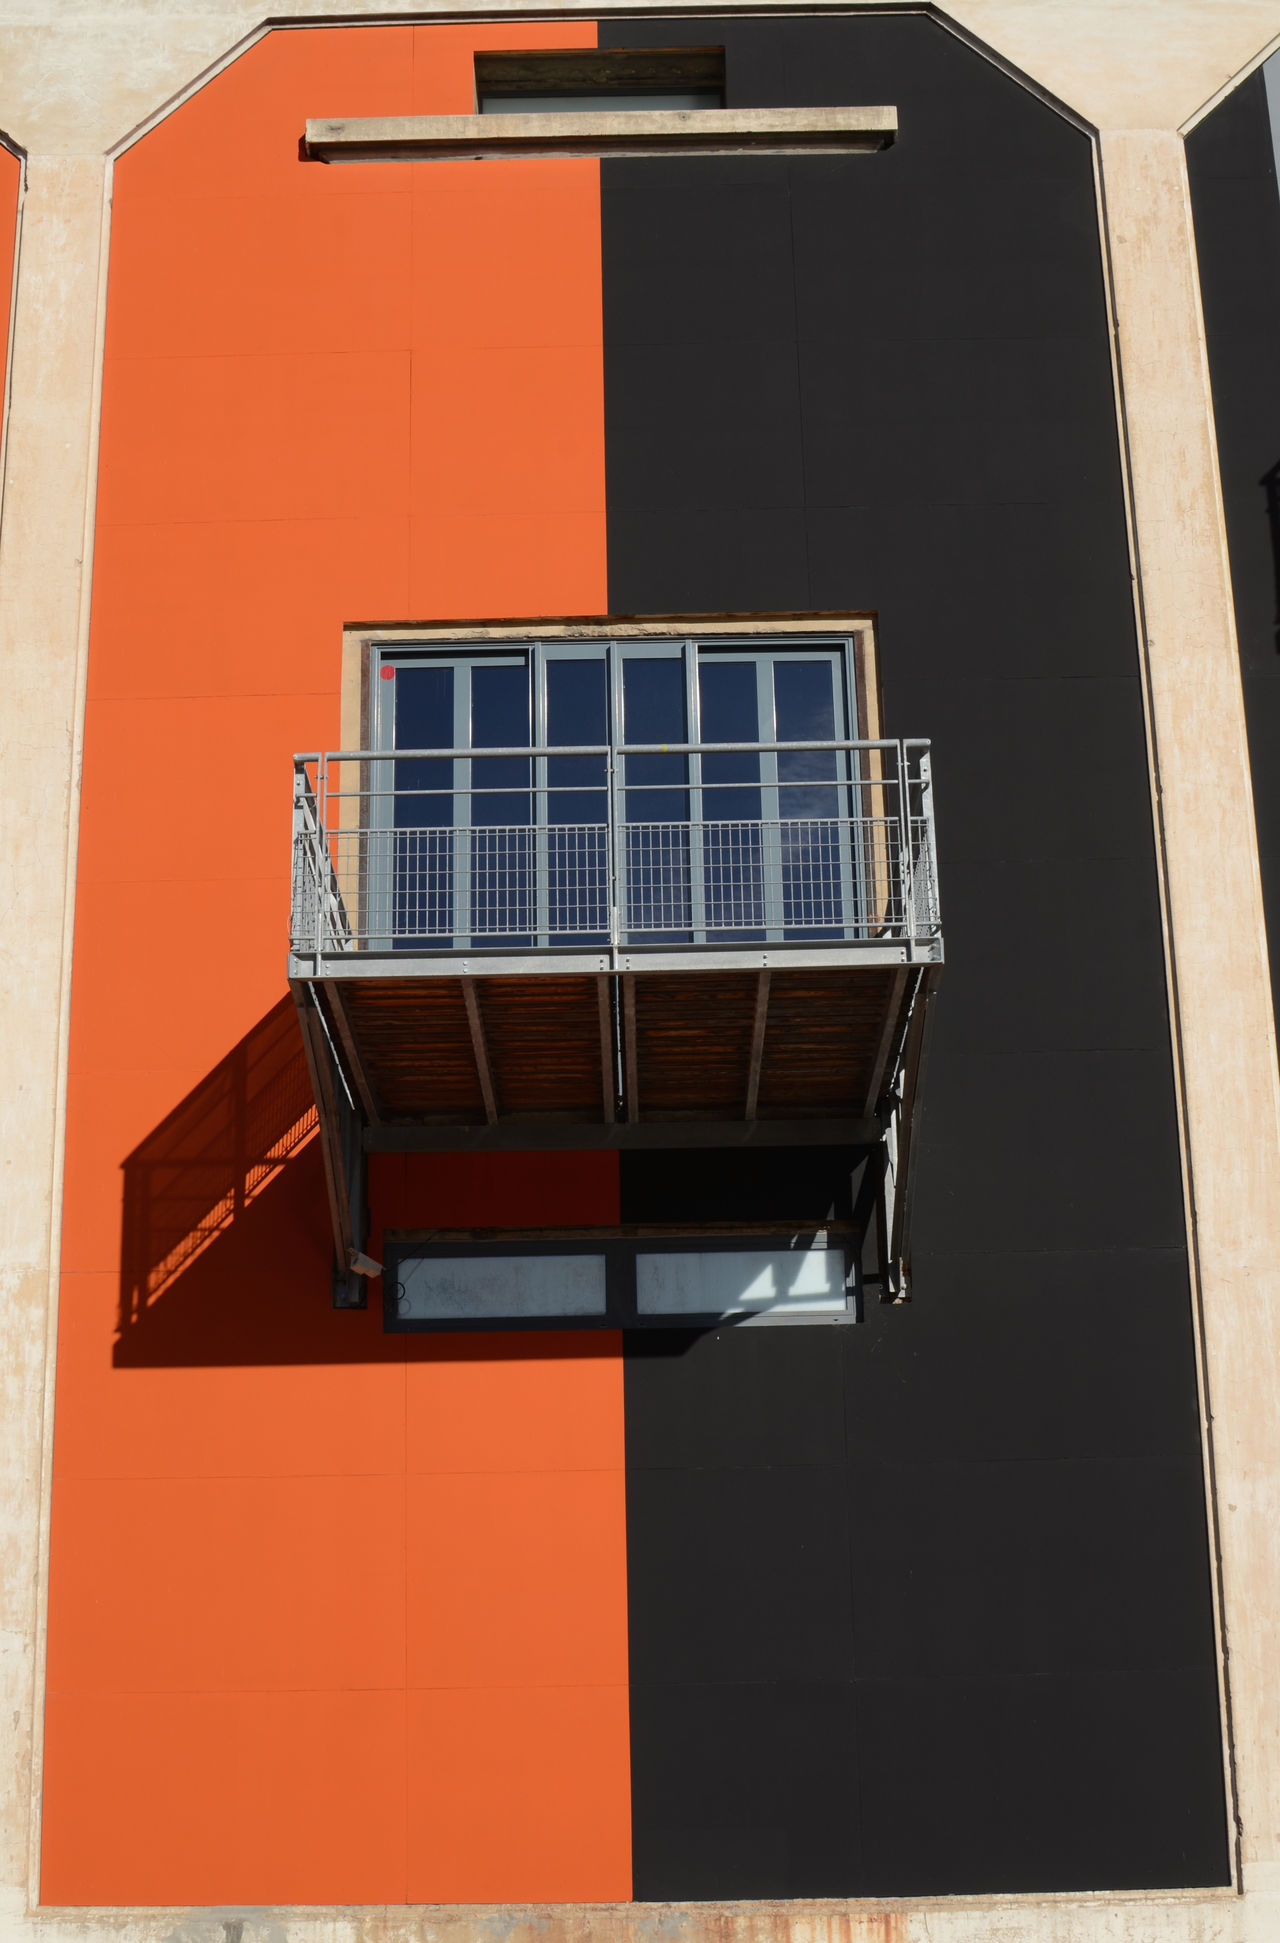 Architecture Balcony Building Exterior Built Structure Close-up Color Day Facade Building Frontage No People Orange Outdoors Sunny Window